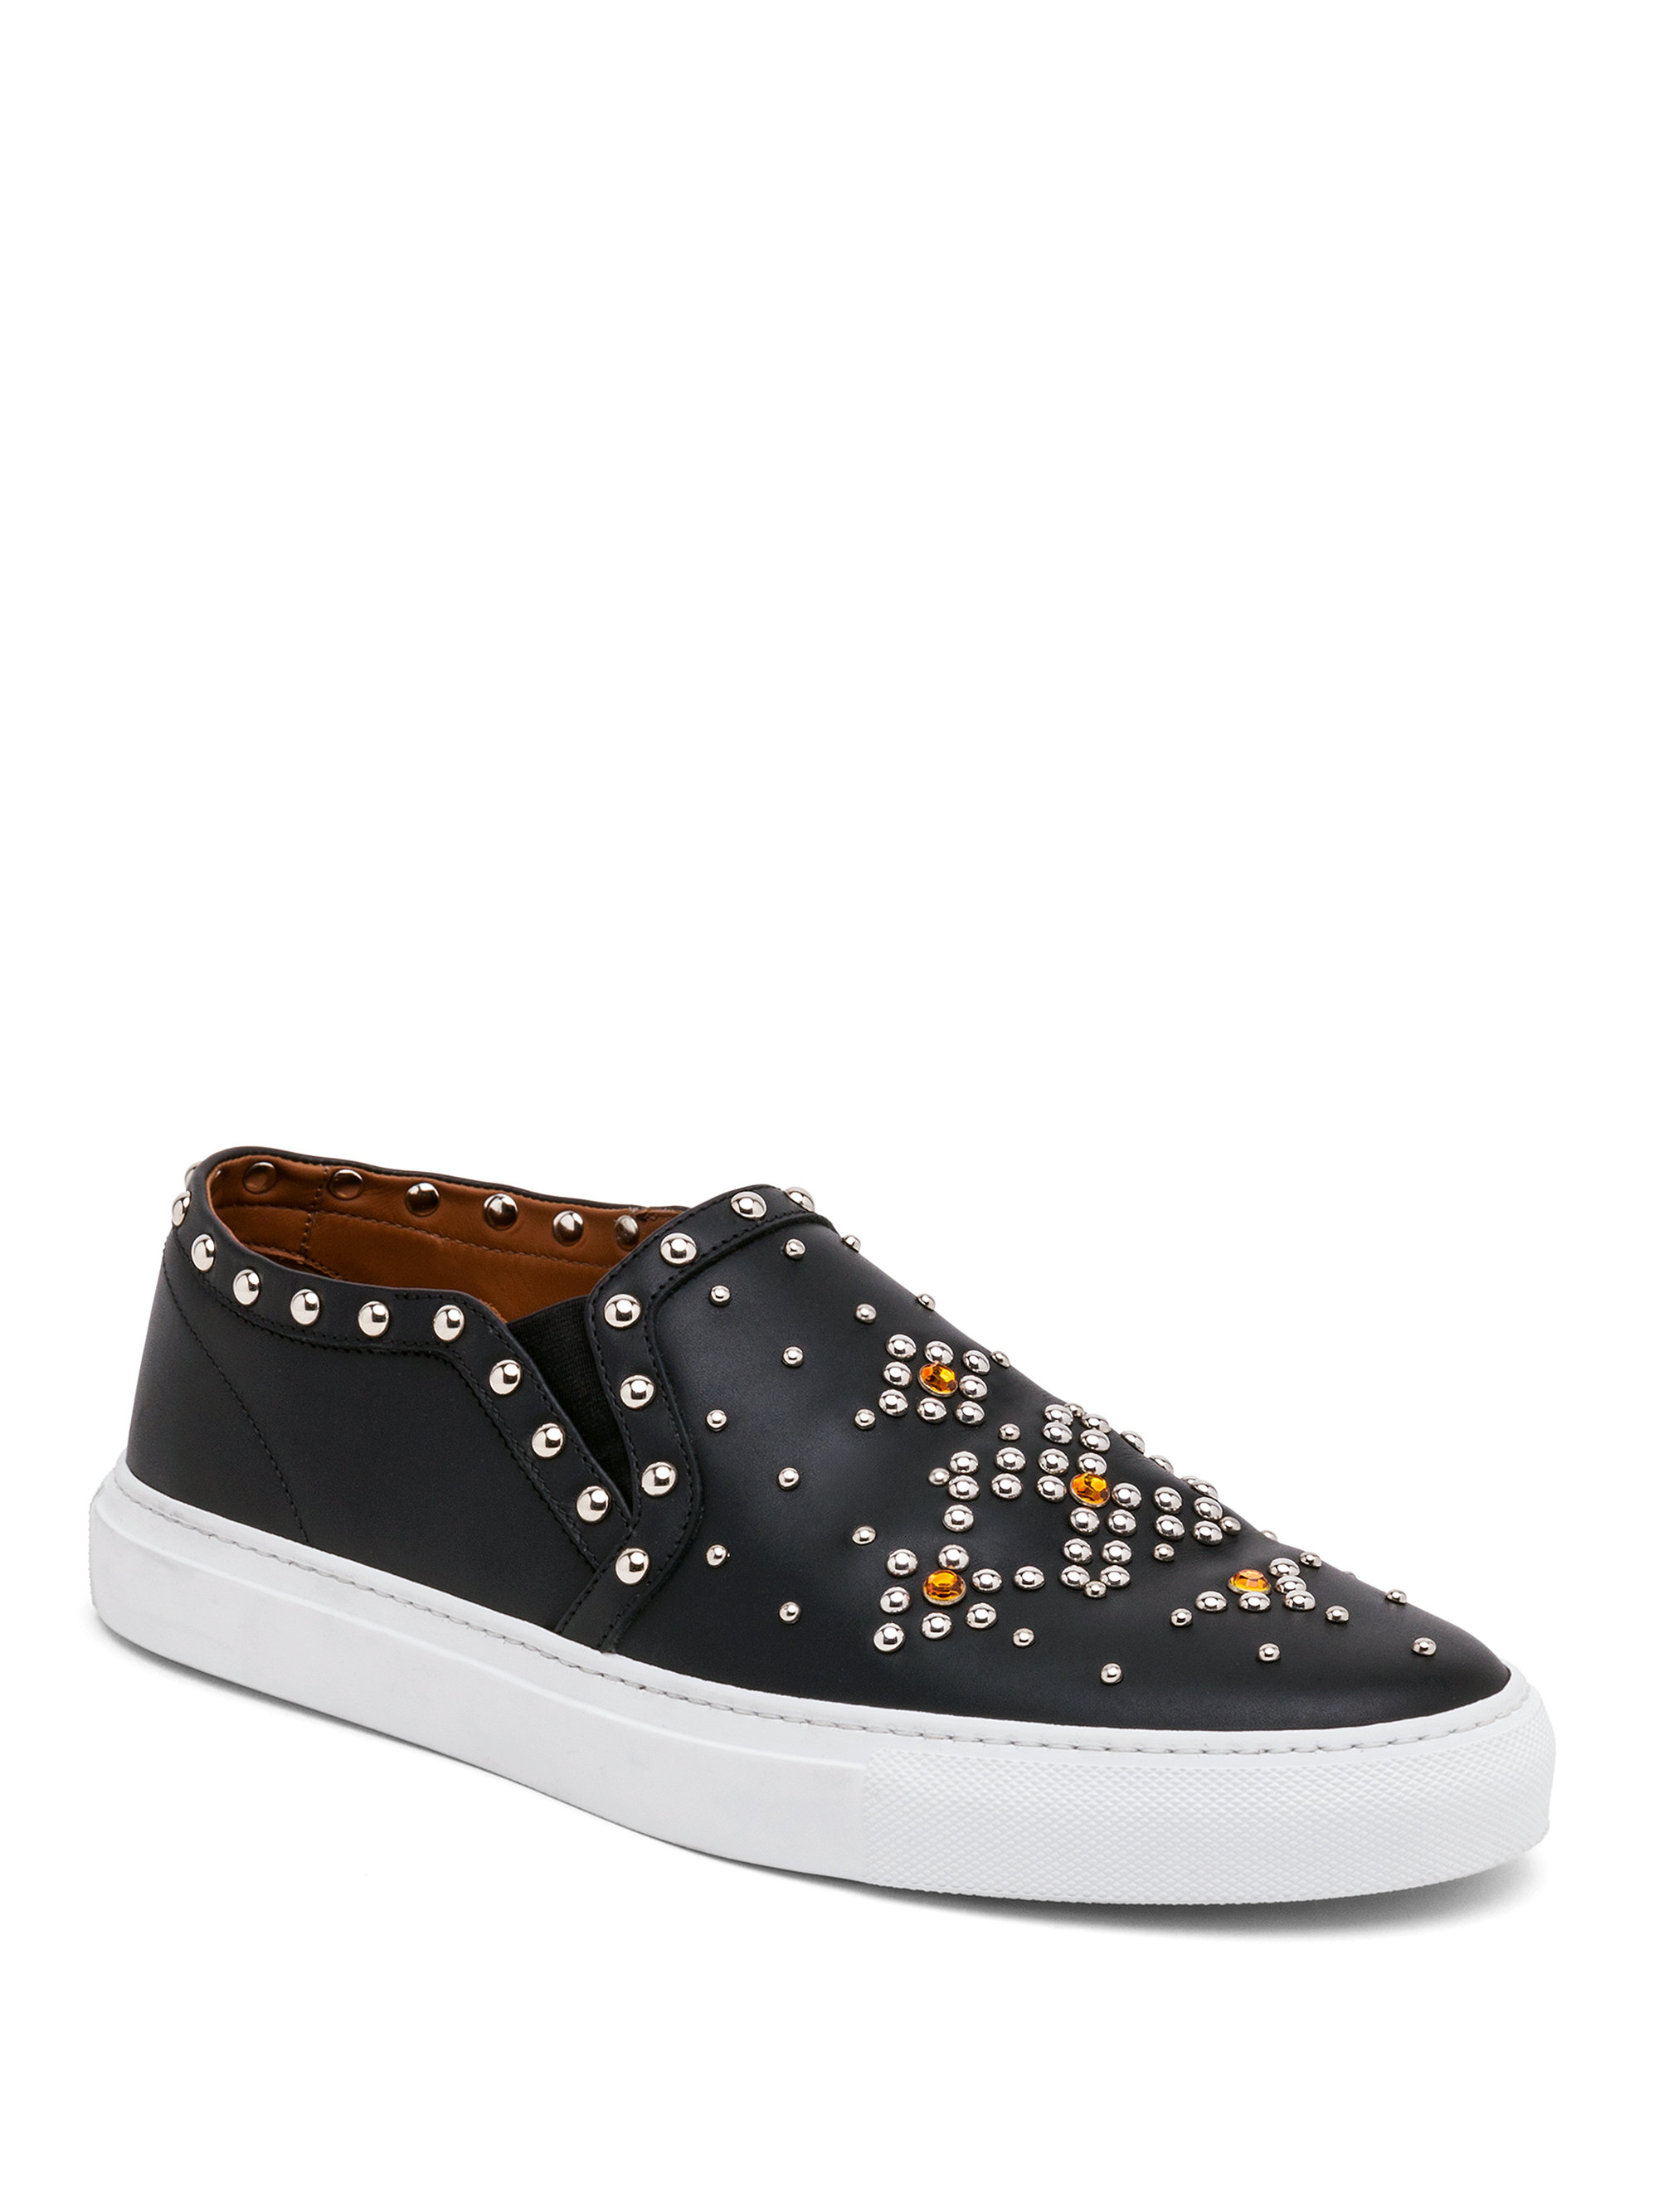 Lyst Givenchy Studded Leather Slip On Sneakers In Black